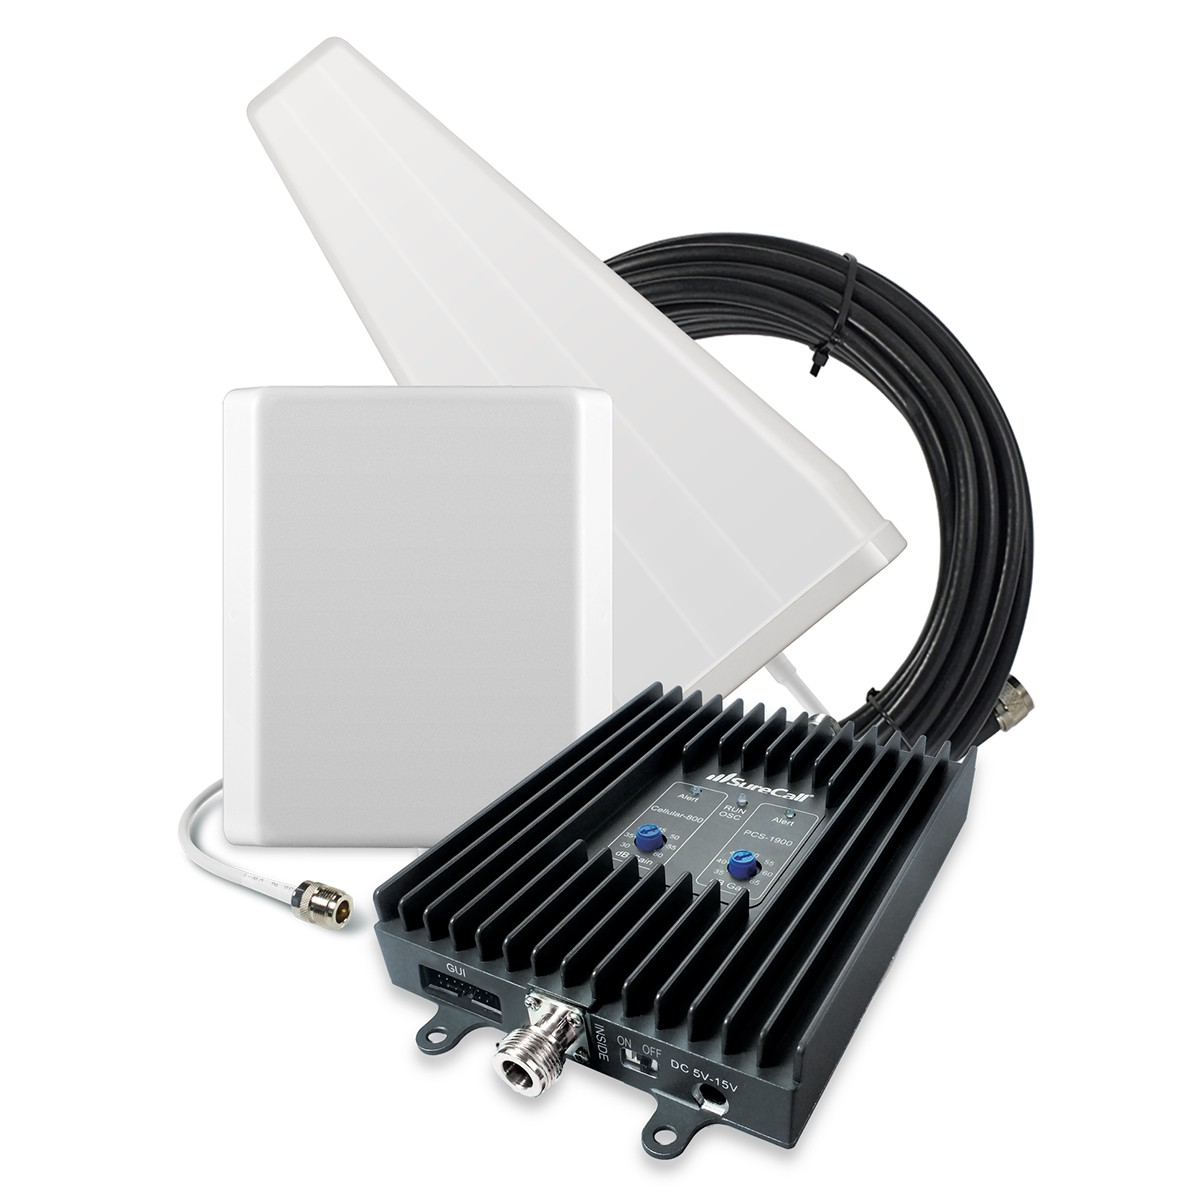 SureCall [FlexPro] Voice & Text Cell Phone Signal Booster Yagi/ Panel Kit [Homes up to 6,000 sq ft]